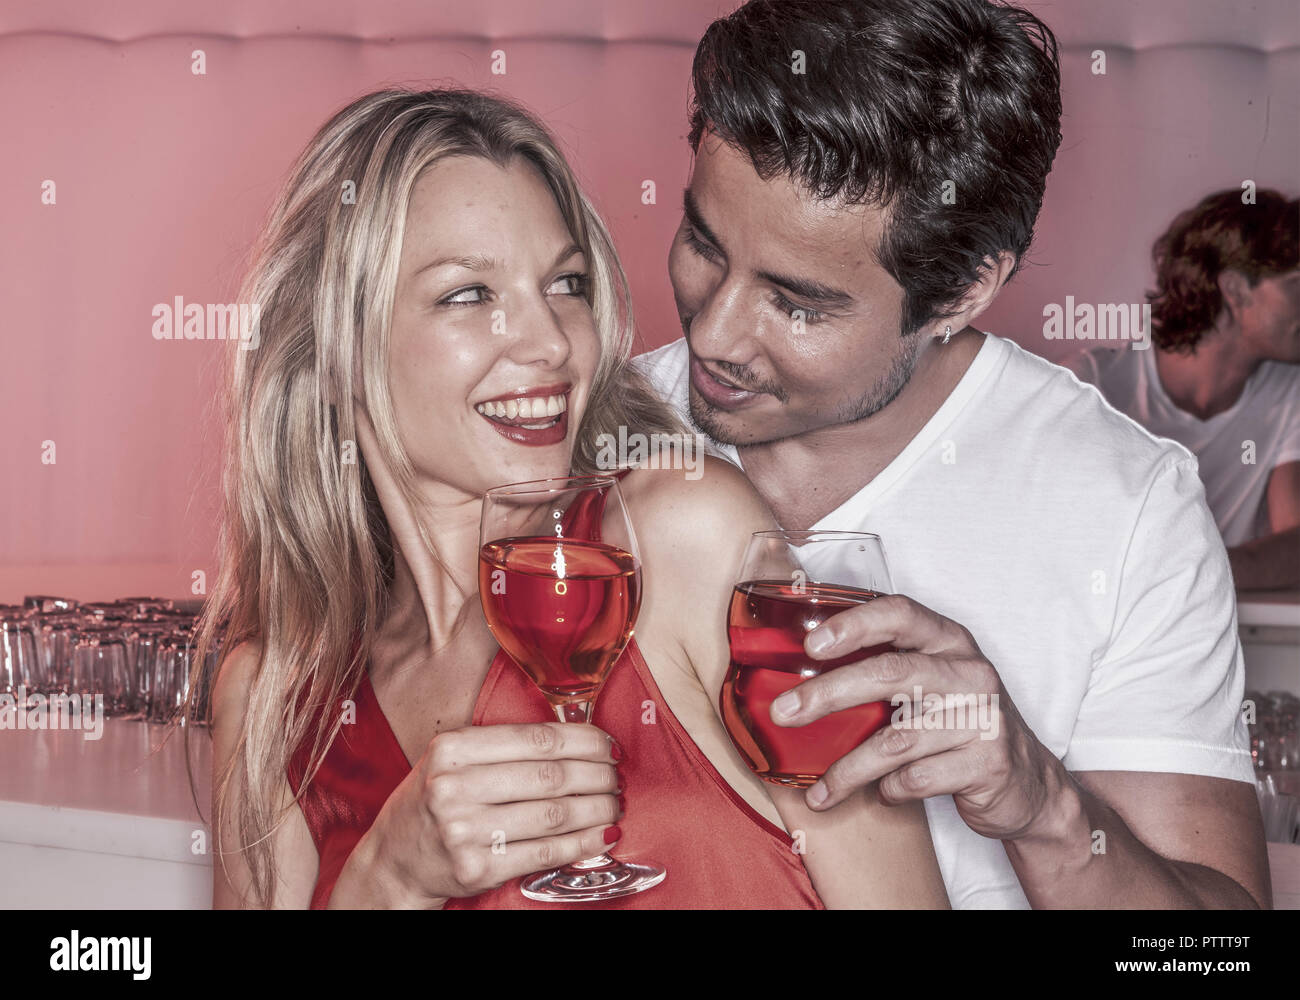 Paar in Nachtclub mit Cocktails (model-released) - Stock Image